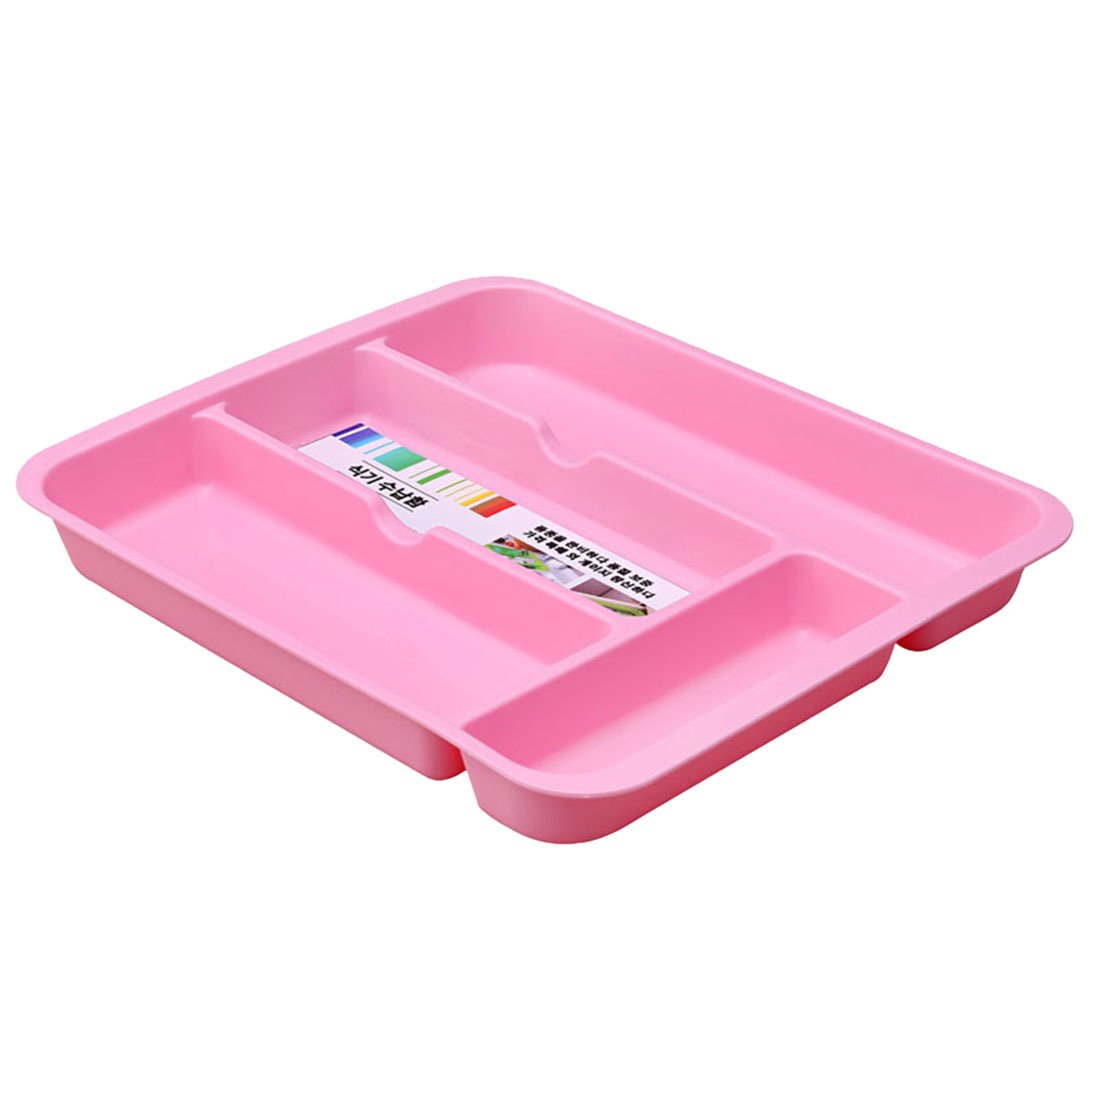 Qianle Plastic Silverware Cutlery Tray 4 Compartment Drawer Organizers Pink